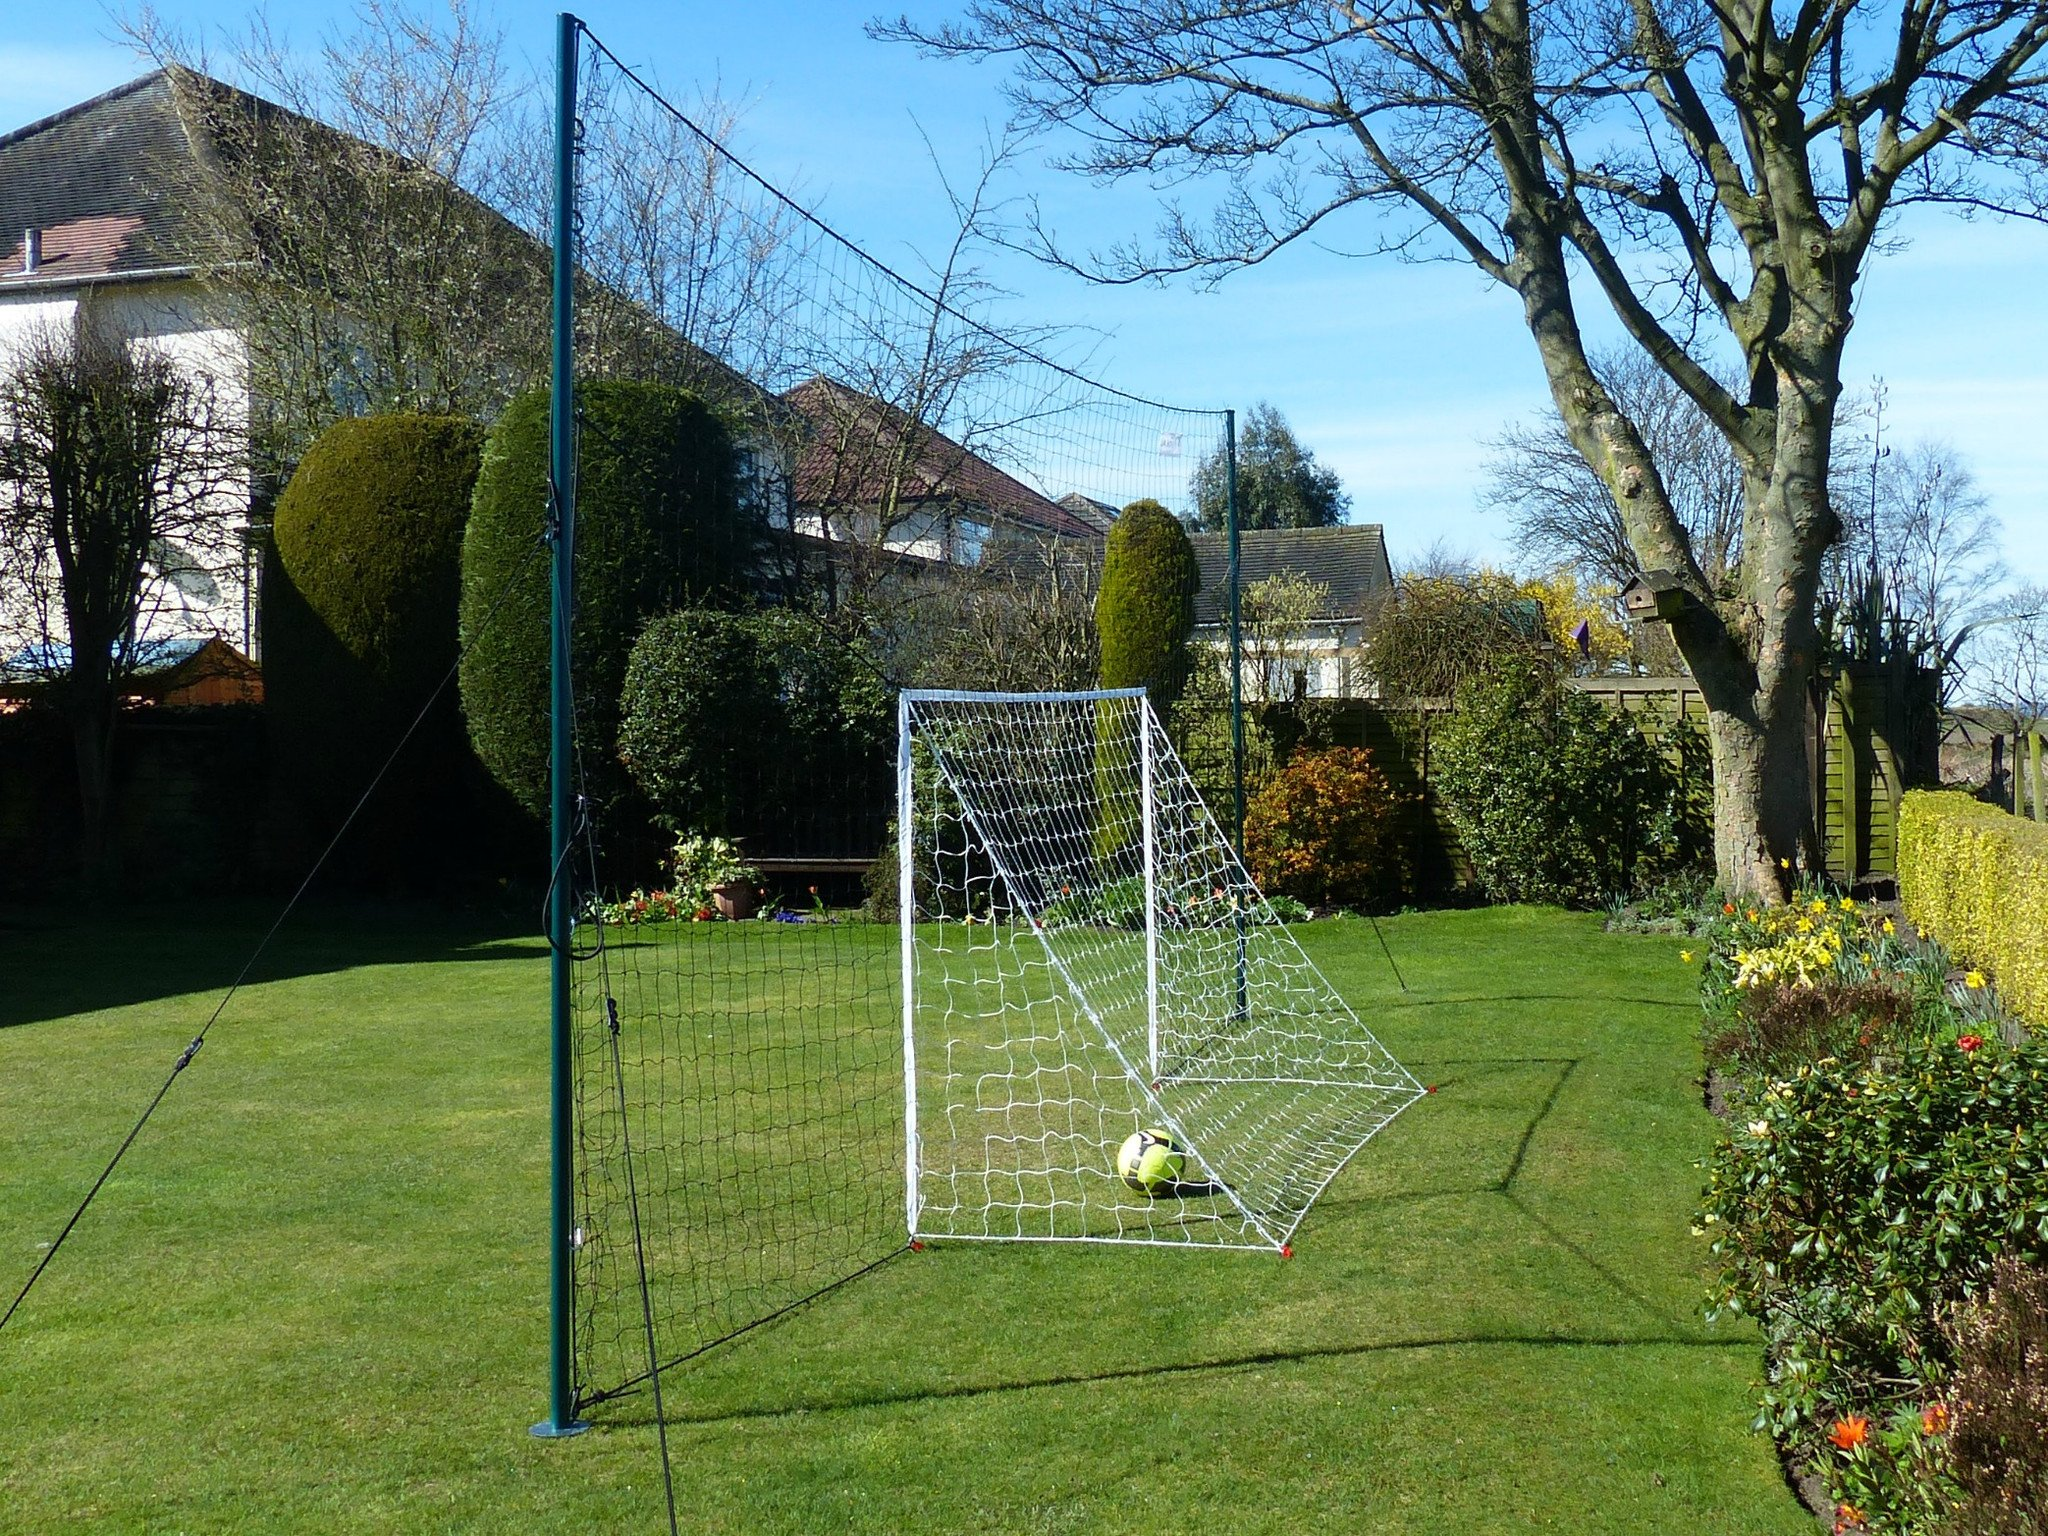 ae5be8a5326 Open Goaaal Soccer Goal + Rebounder + Backstop ALL IN ONE ...